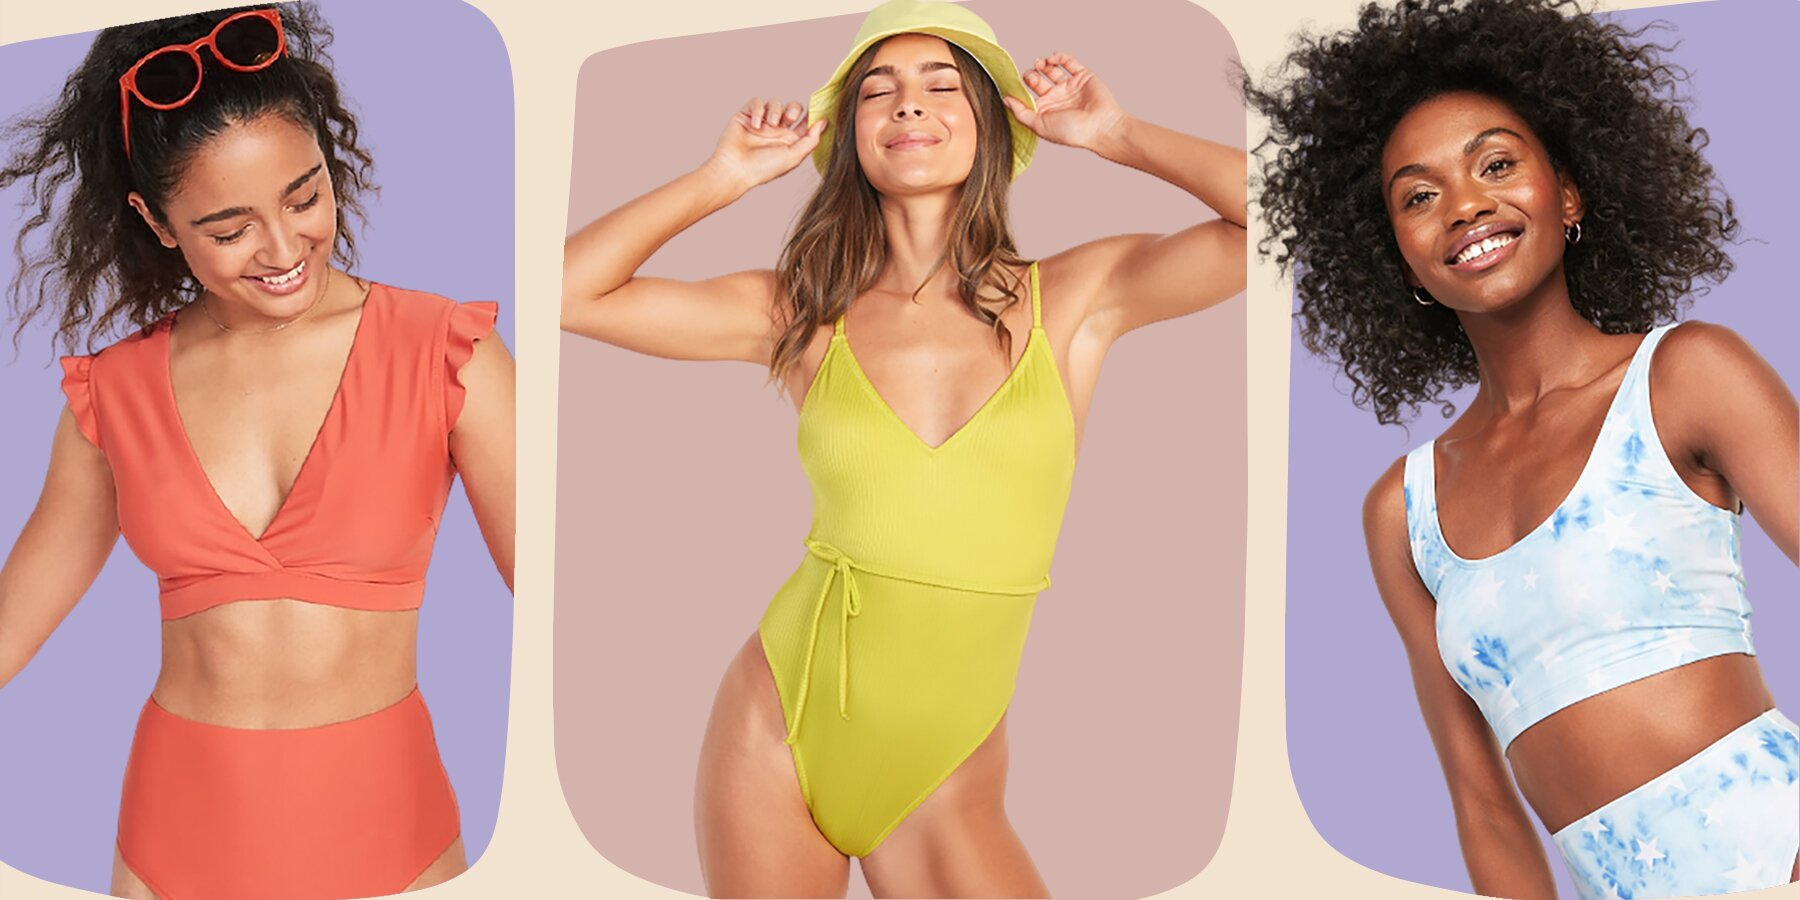 Image Old Navy Swimwear Is Colorful Size Inclusive and Affordable 8211 HelloGiggles